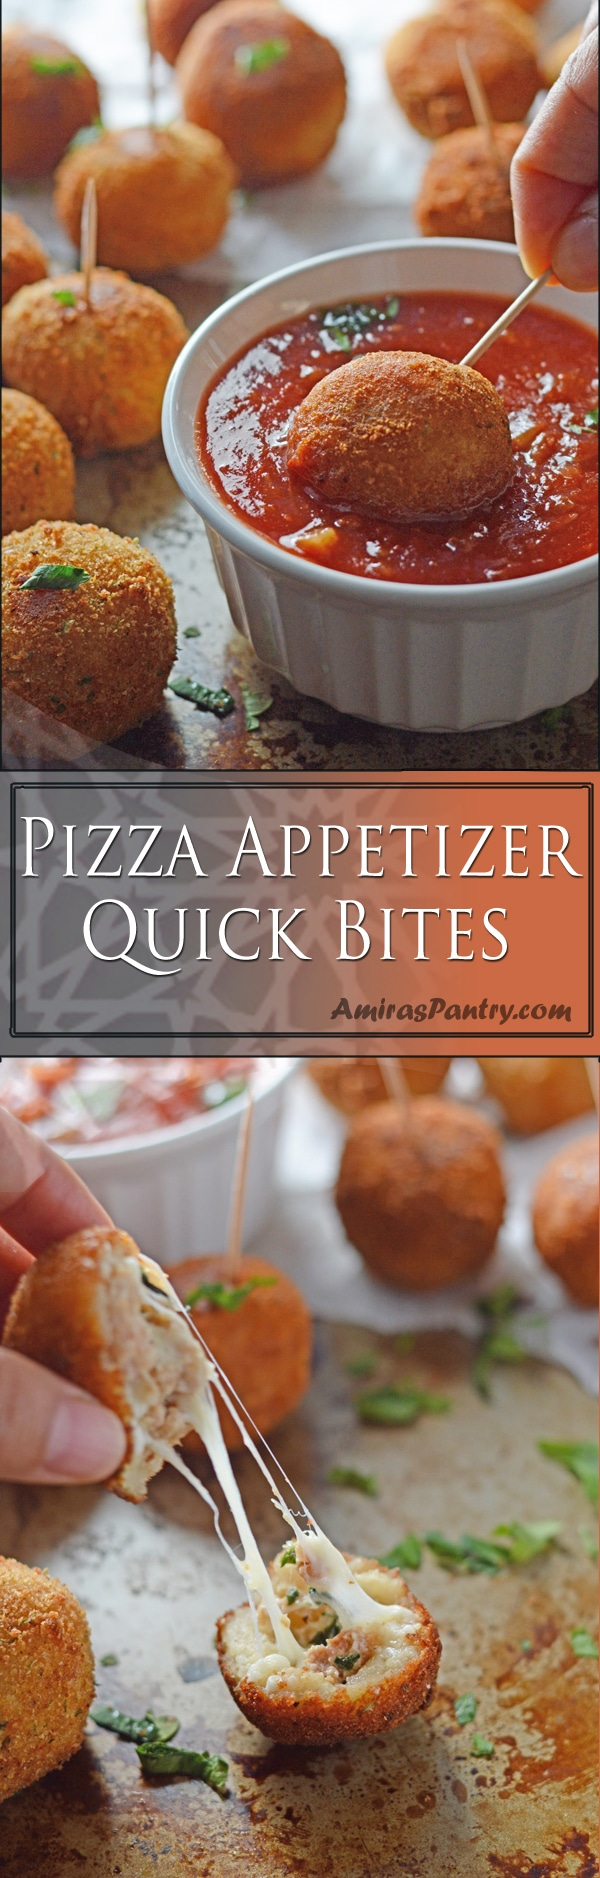 These pizza balls are crispy outside, pillowy inside, a very pizza appetizer bites. Fill them with your family favorite, think pepperoni, sausage, bacon and melted cheese. Great for an afterschool snack or an ultimate game day appetizer. Enjoy the goodness of  homemade pizza bites.